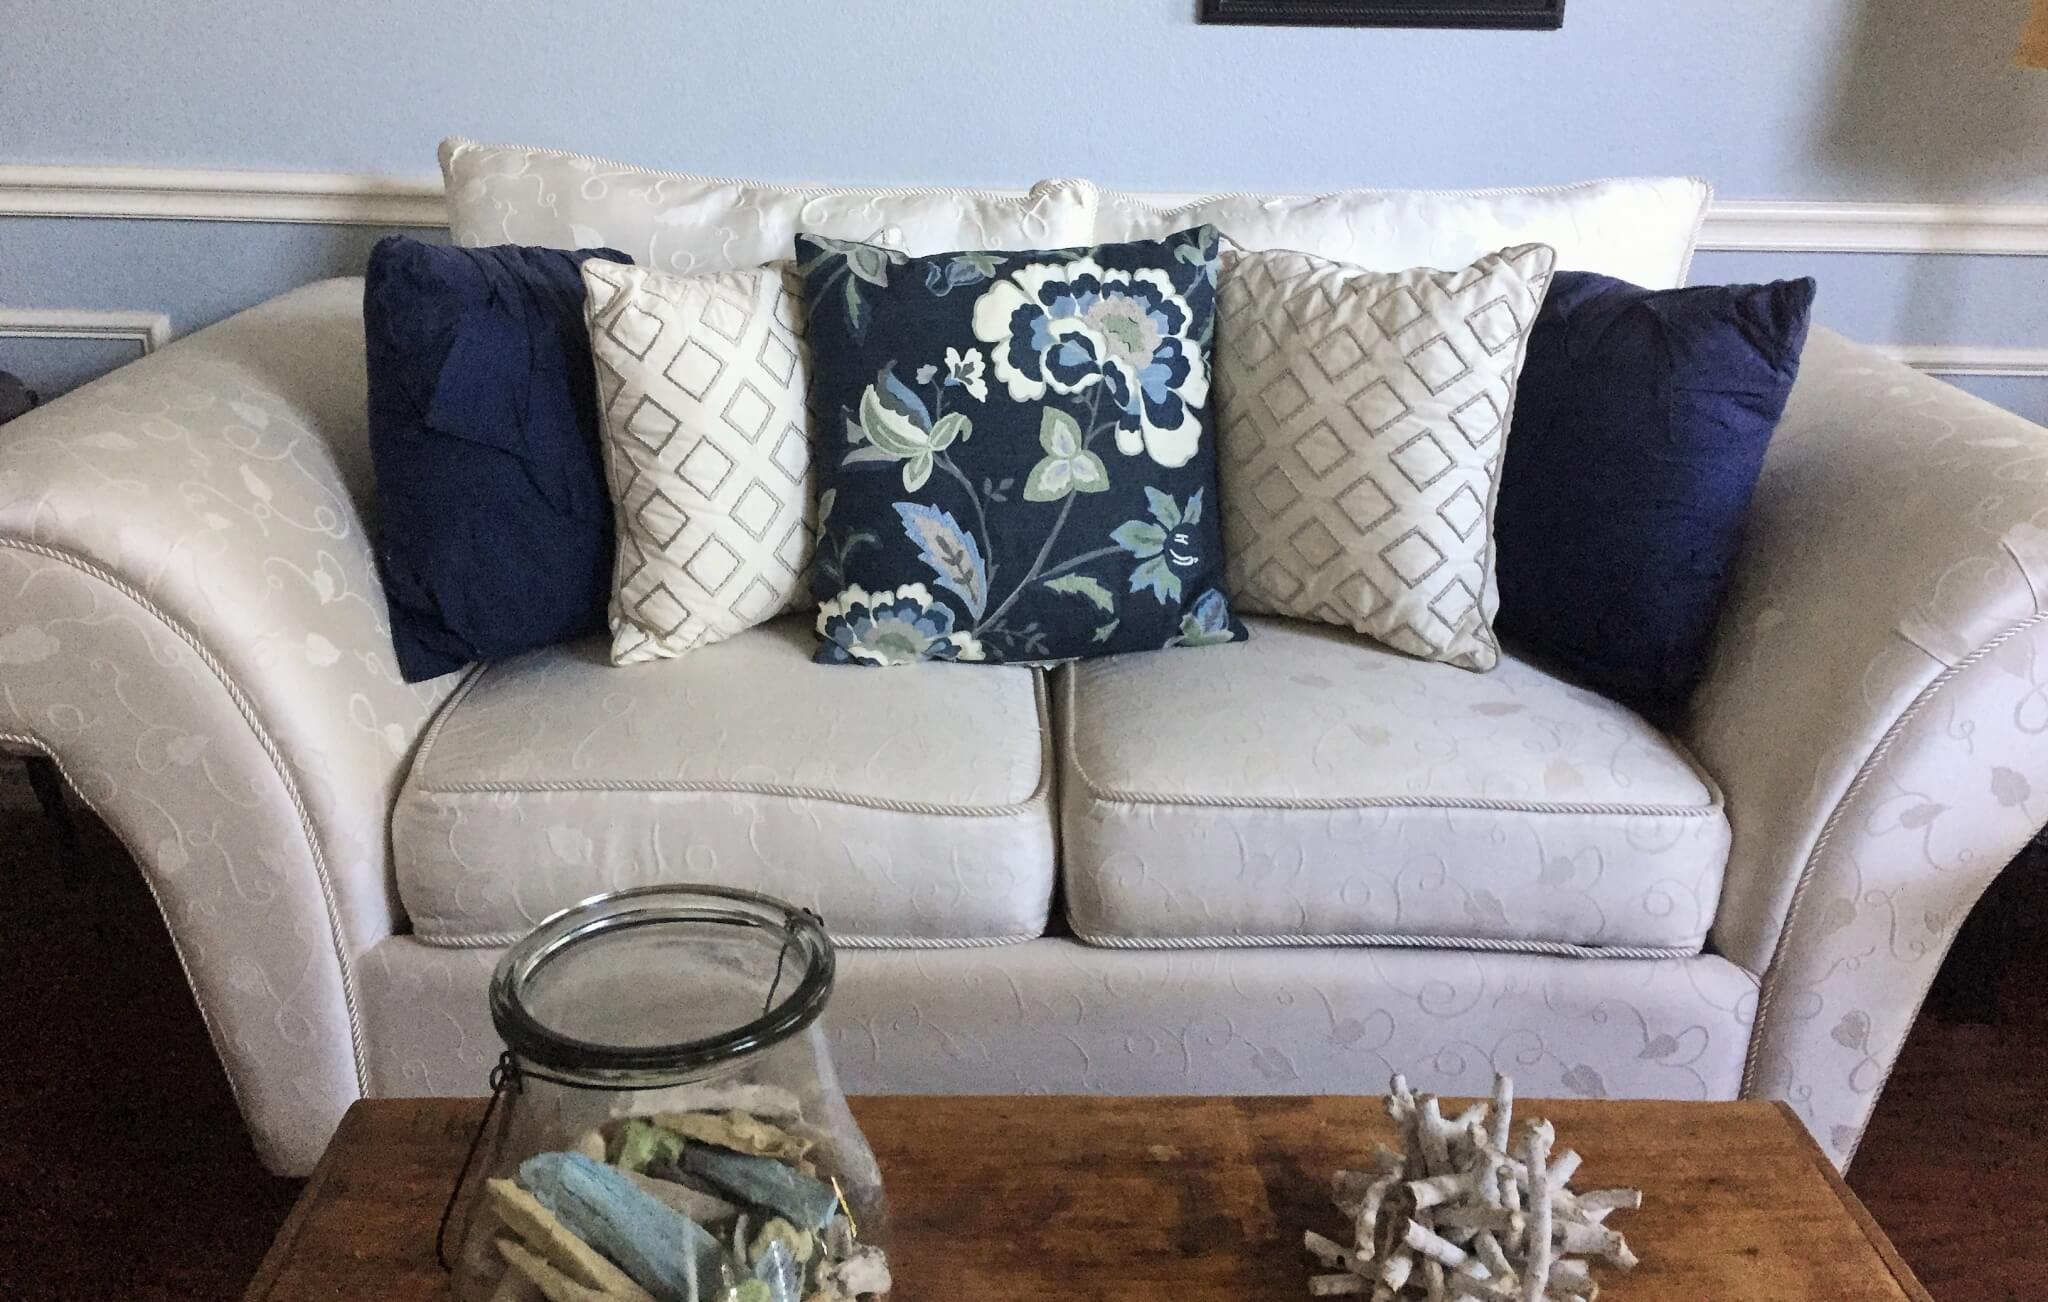 Couch with large print, small print, and solid throw pillows.